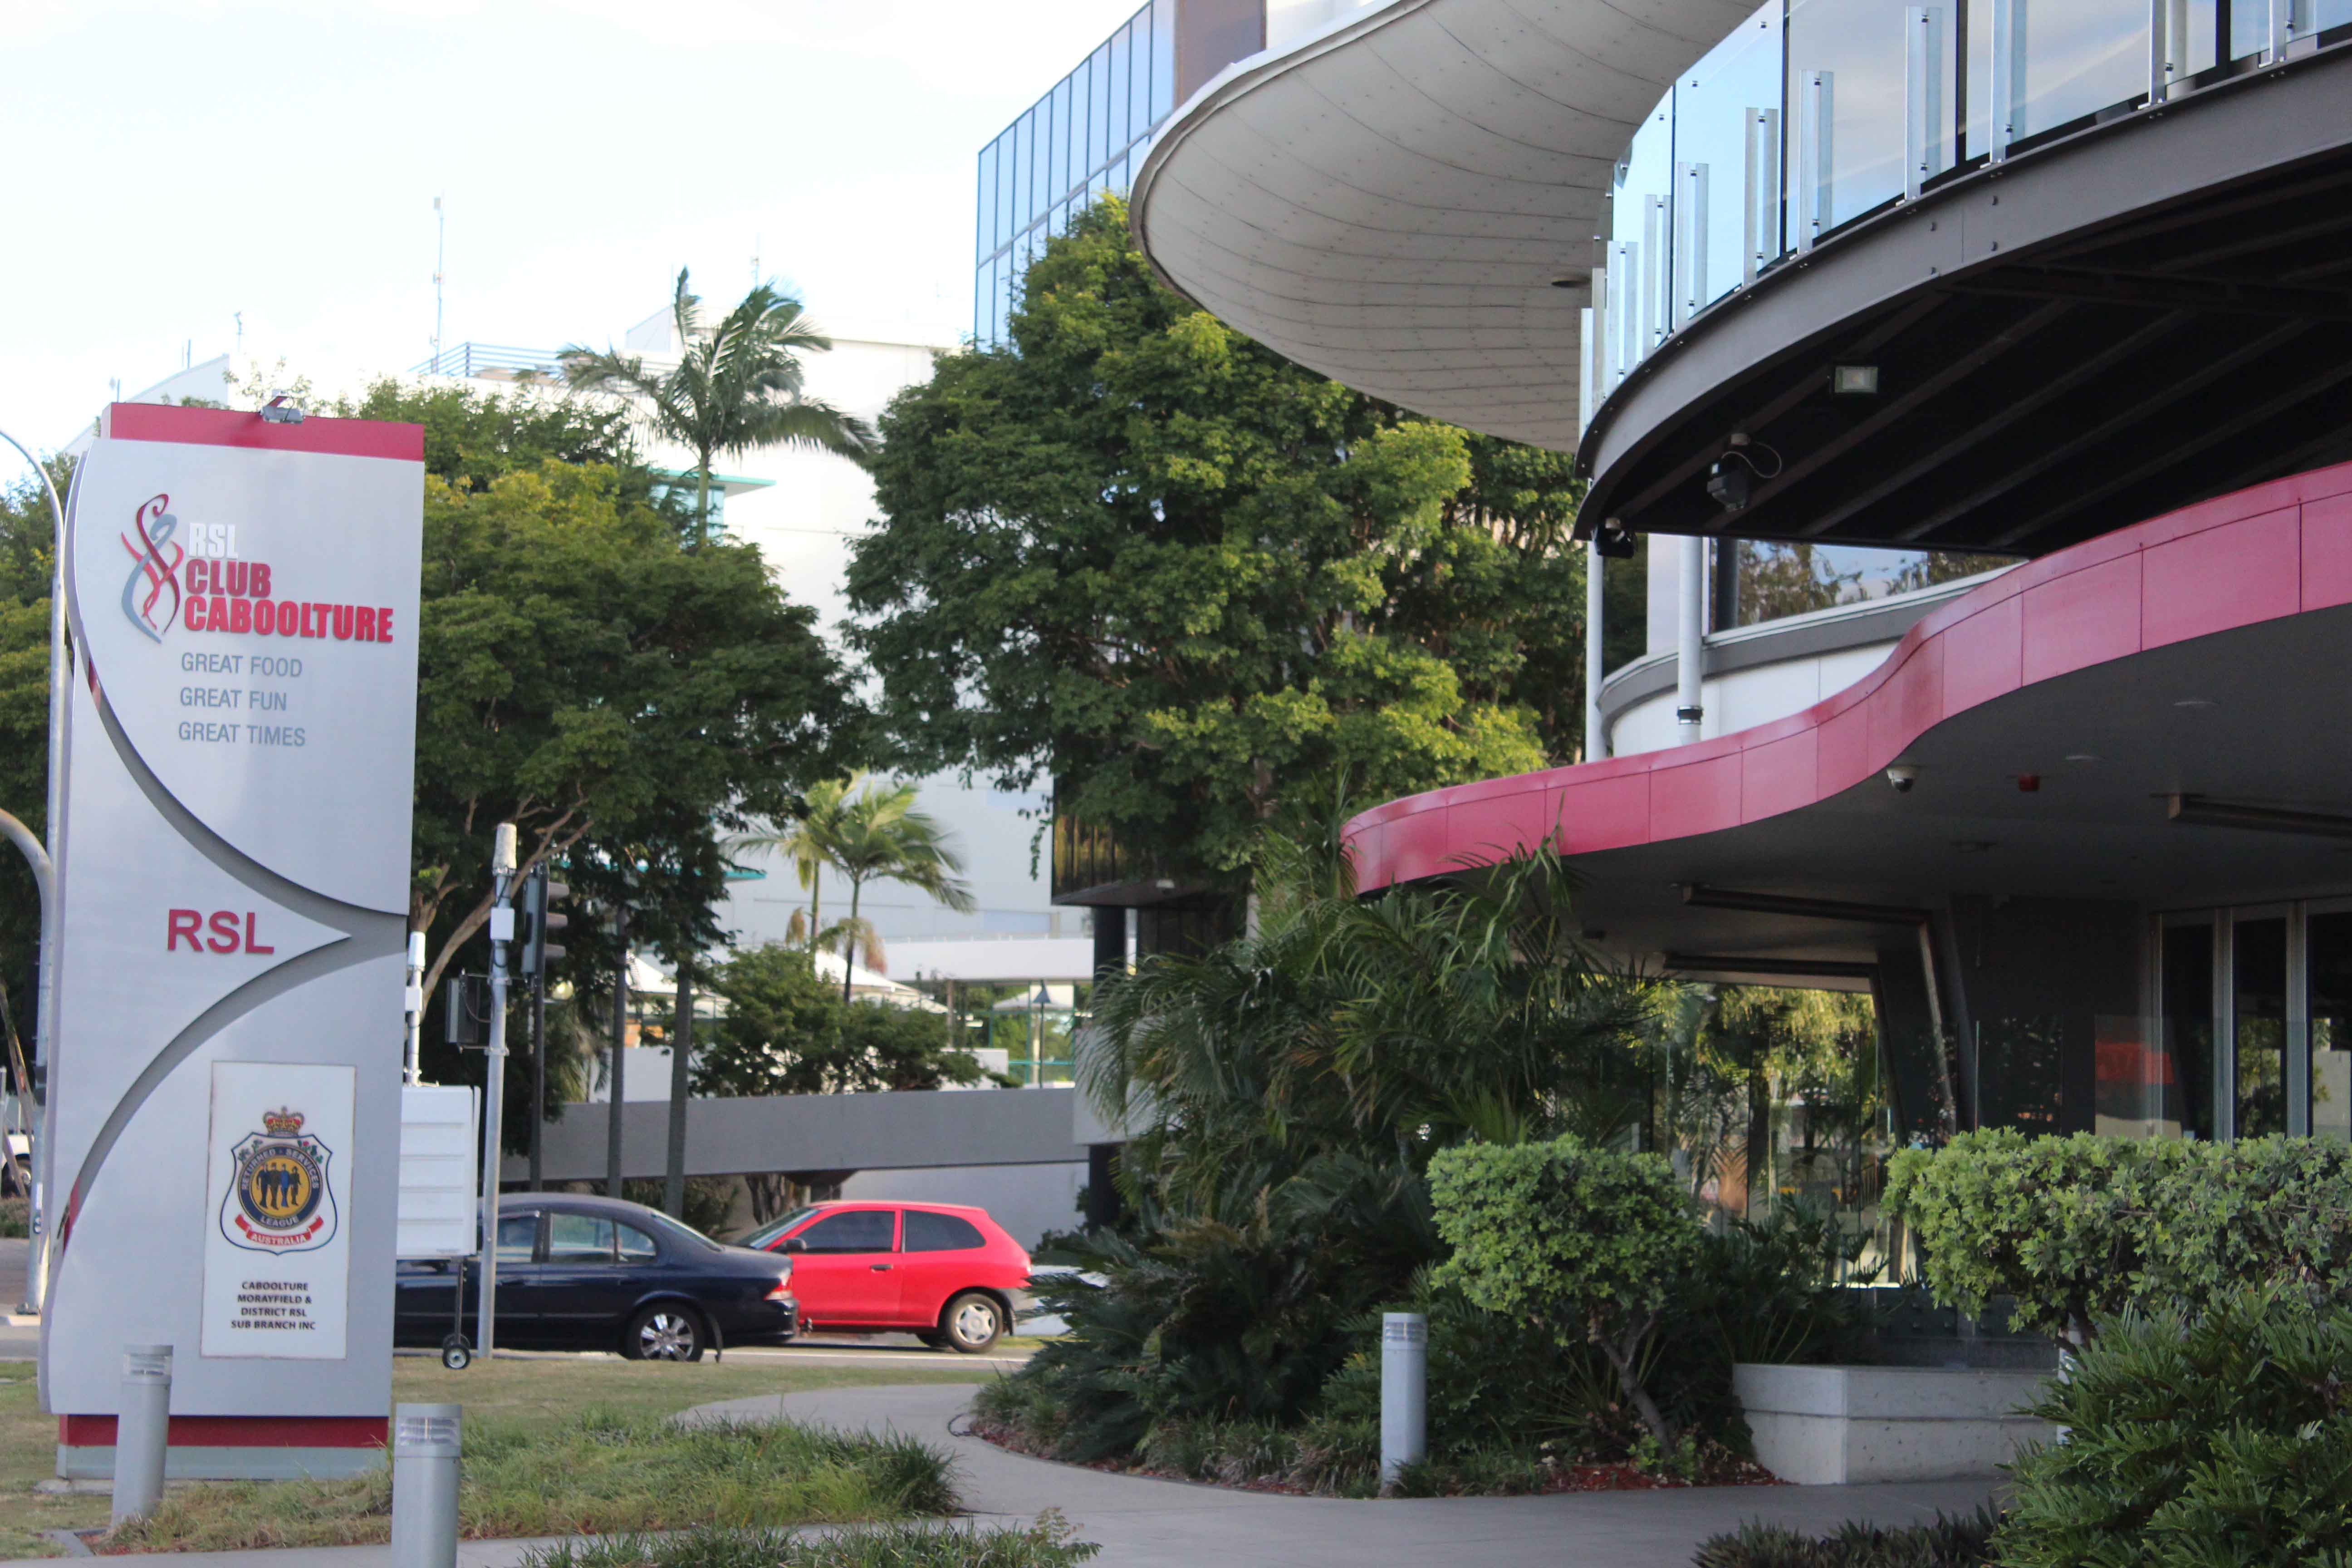 RSL Club Caboolture IMG_0620